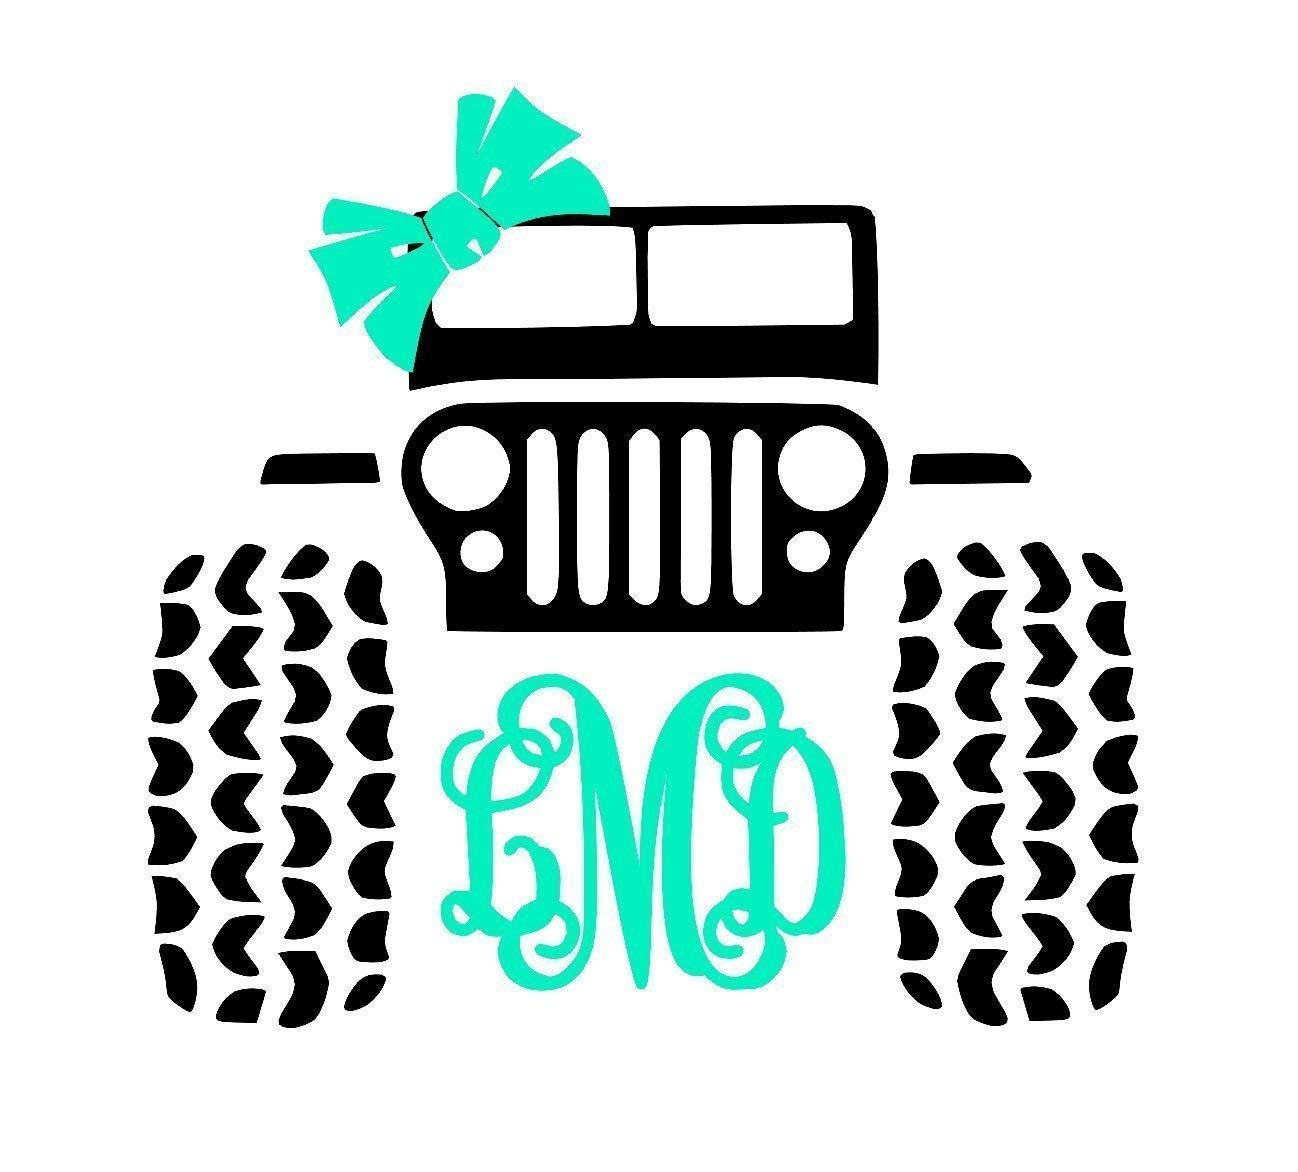 Custom jeep 4x4 monogram decal sticker bow crown for laptop locker car yeti cooler tumbler or cup